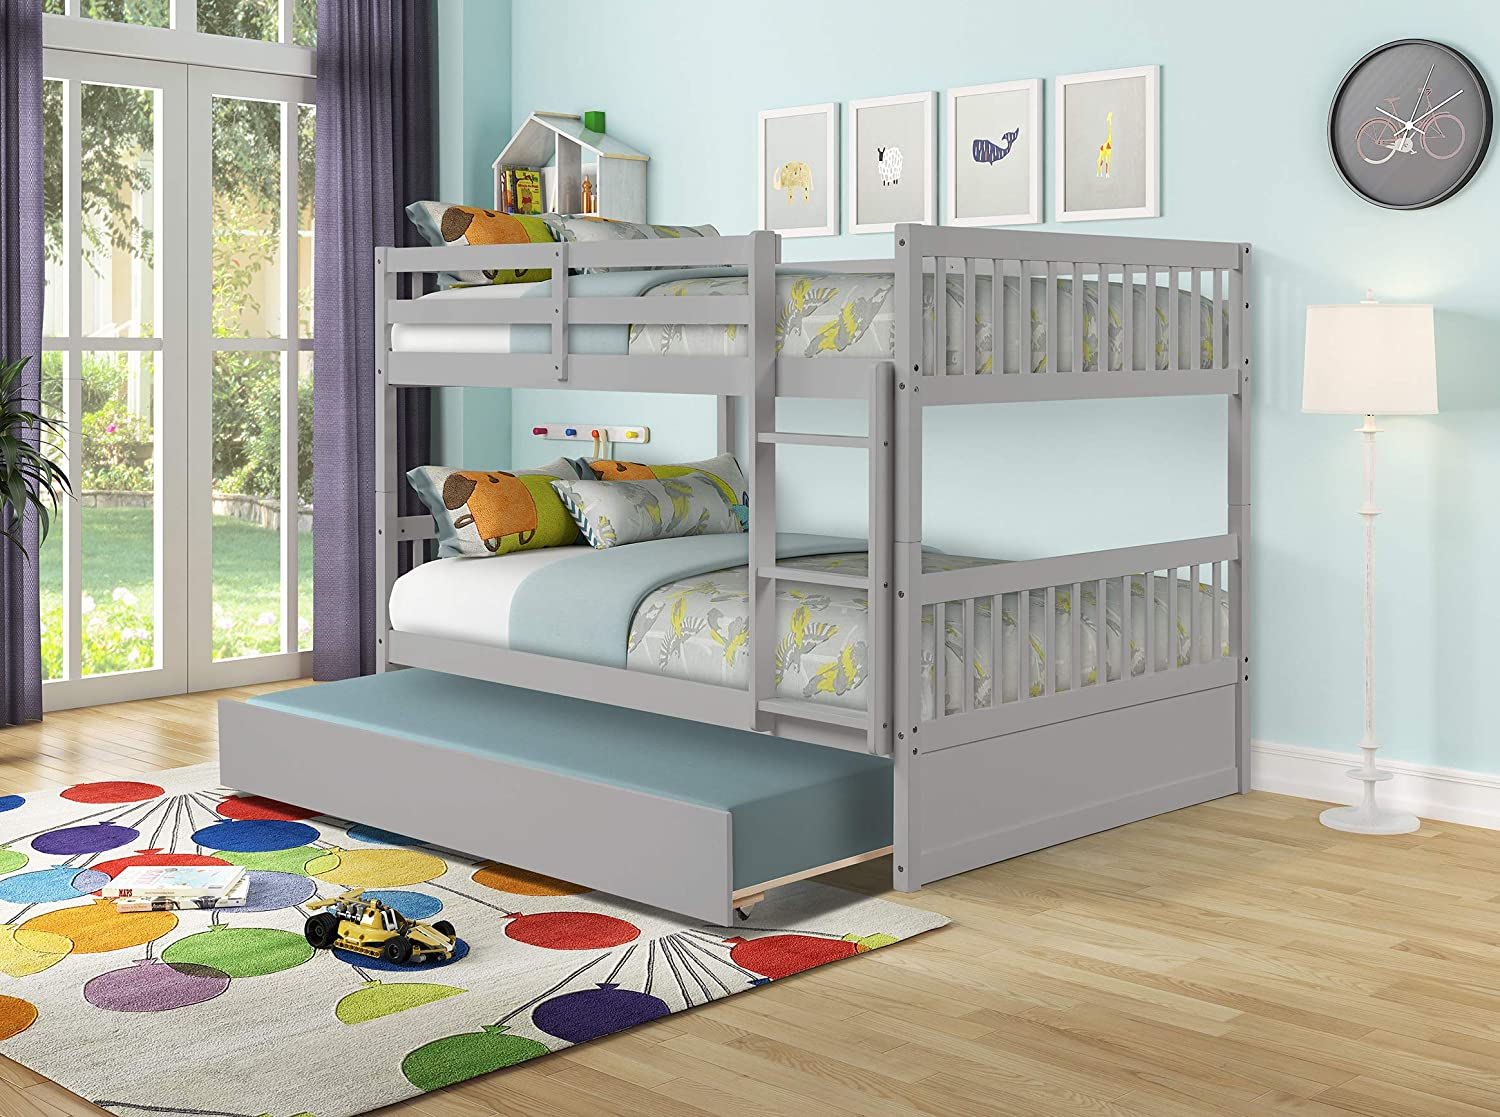 Full Over Full Bunk Bed with Twin Size Trundle, Pine Wood Bunk Beds Full Over Full with Safety Rail & Ladder, Convertible To 2 Full-Size Platform Bed, Bunk Bed for Kids Girls Teens Adults (Grey)